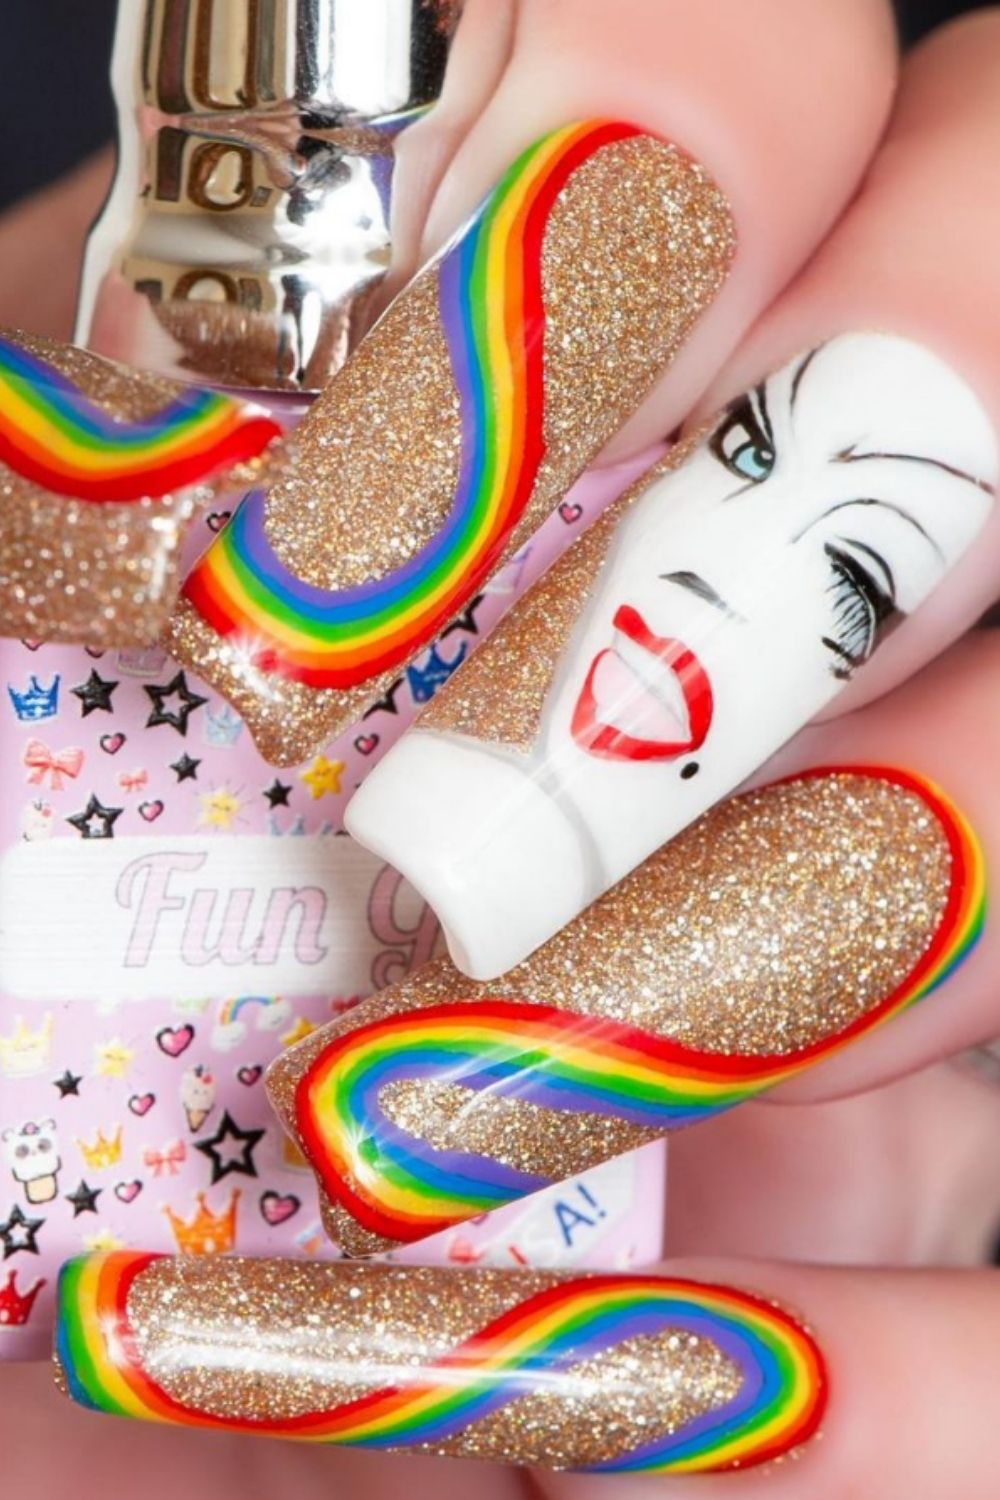 Rainbow acrylic nails   Here's How to Take Part in the Trend